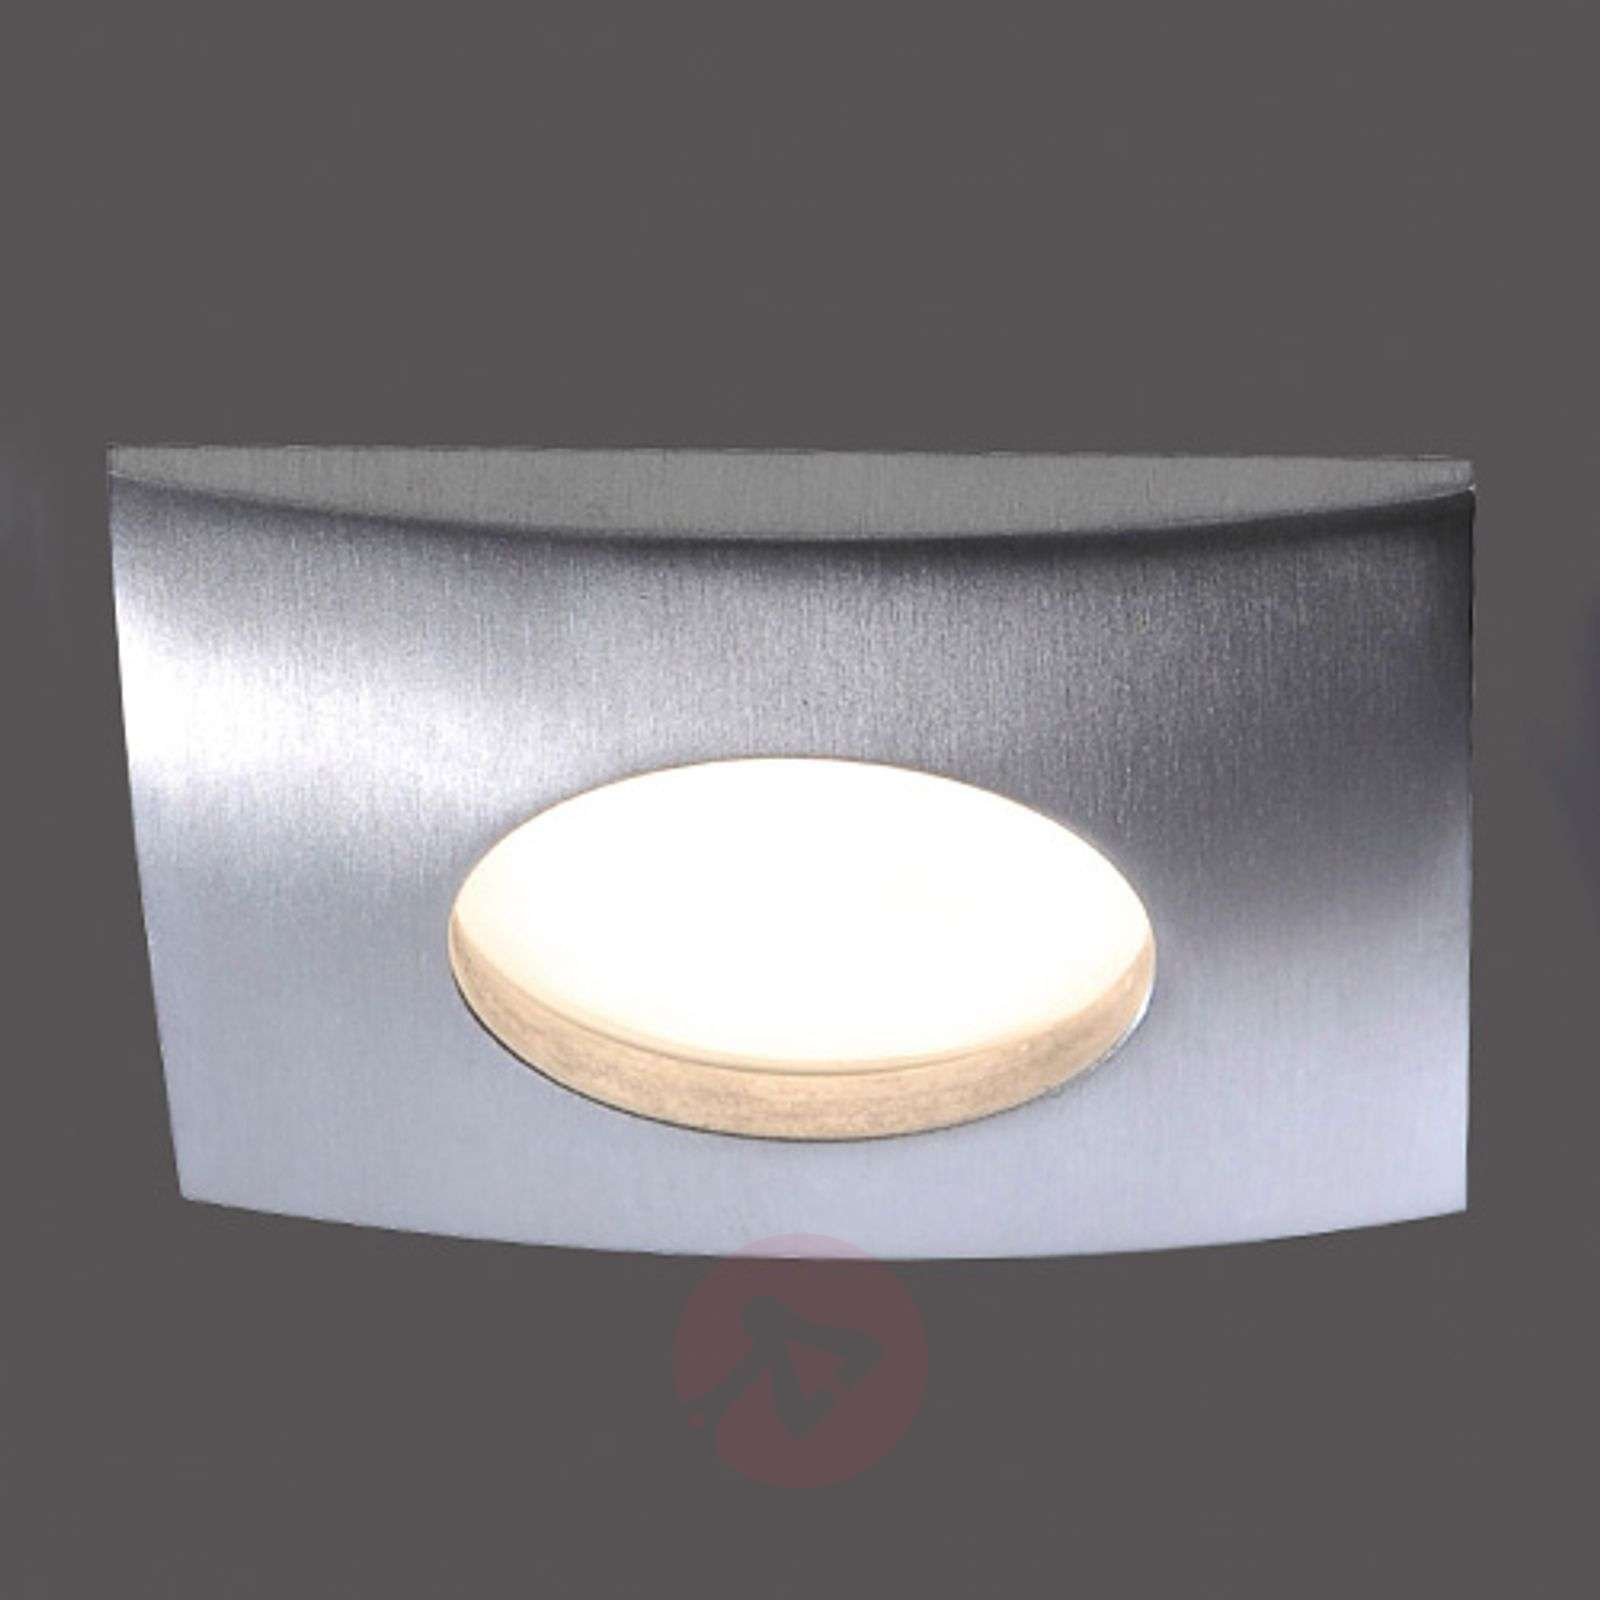 Plafonnier encastr. LED dimmable Lumeco, angulaire-7610404-01